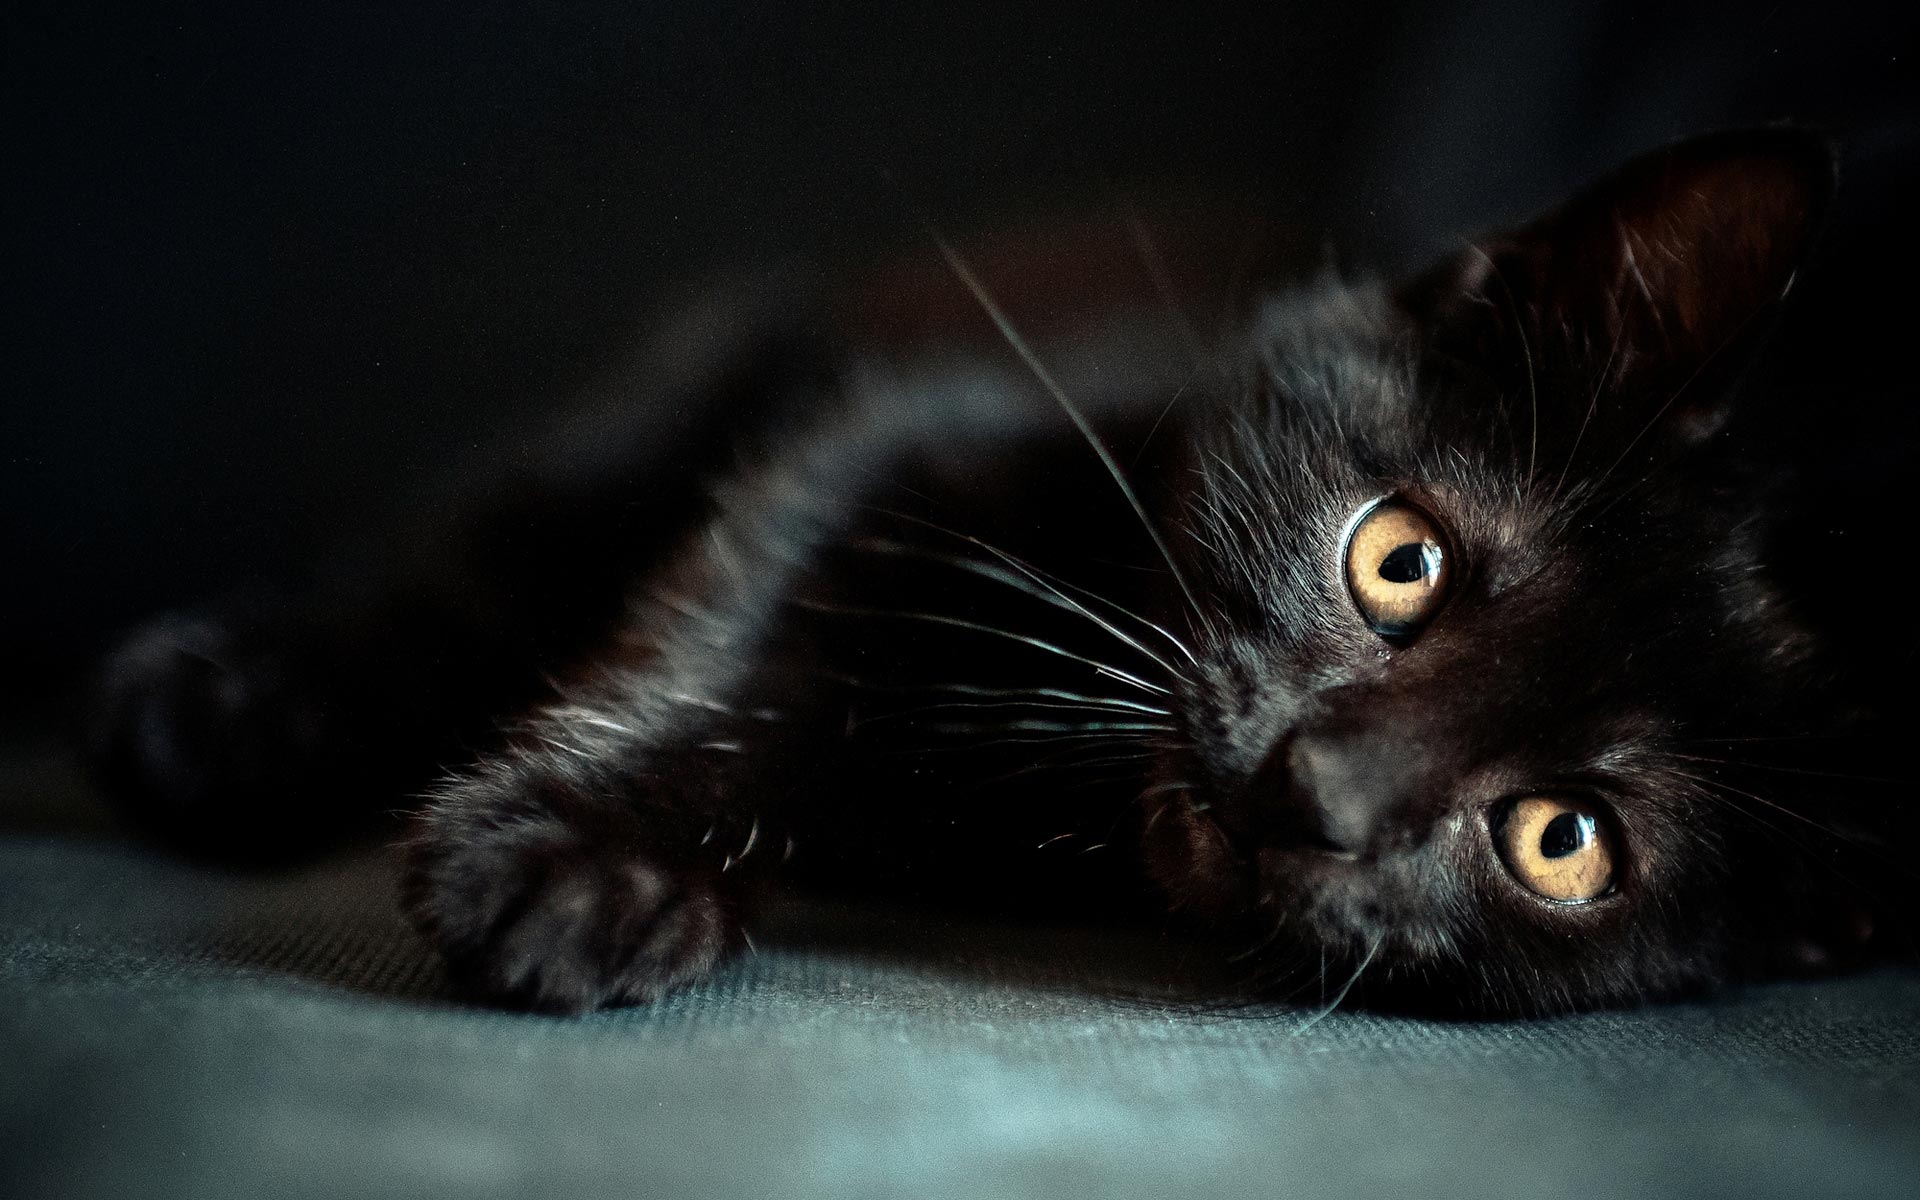 Wallpaper hd gatti nero